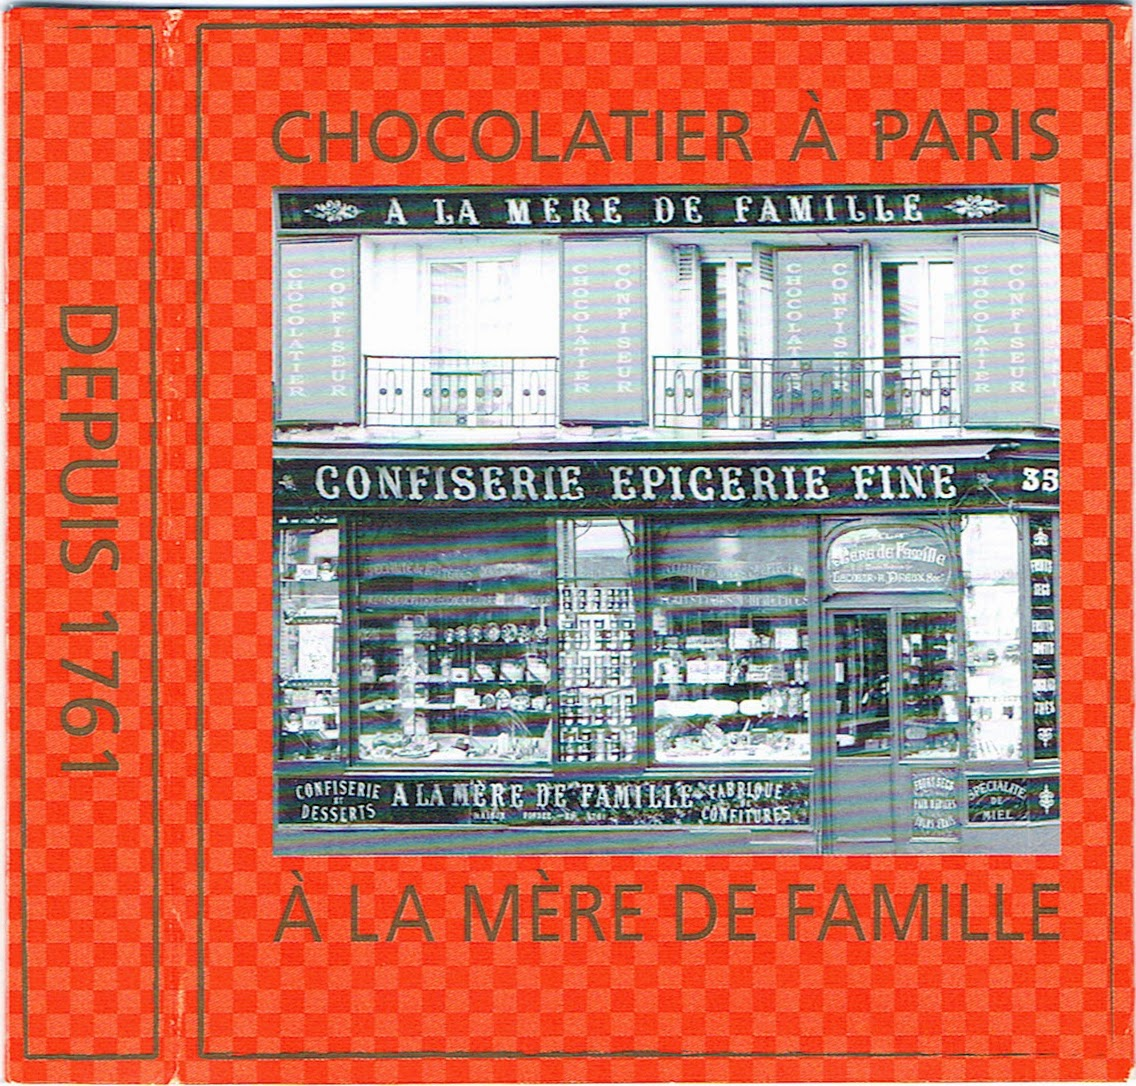 French chocolate bar label from Paris